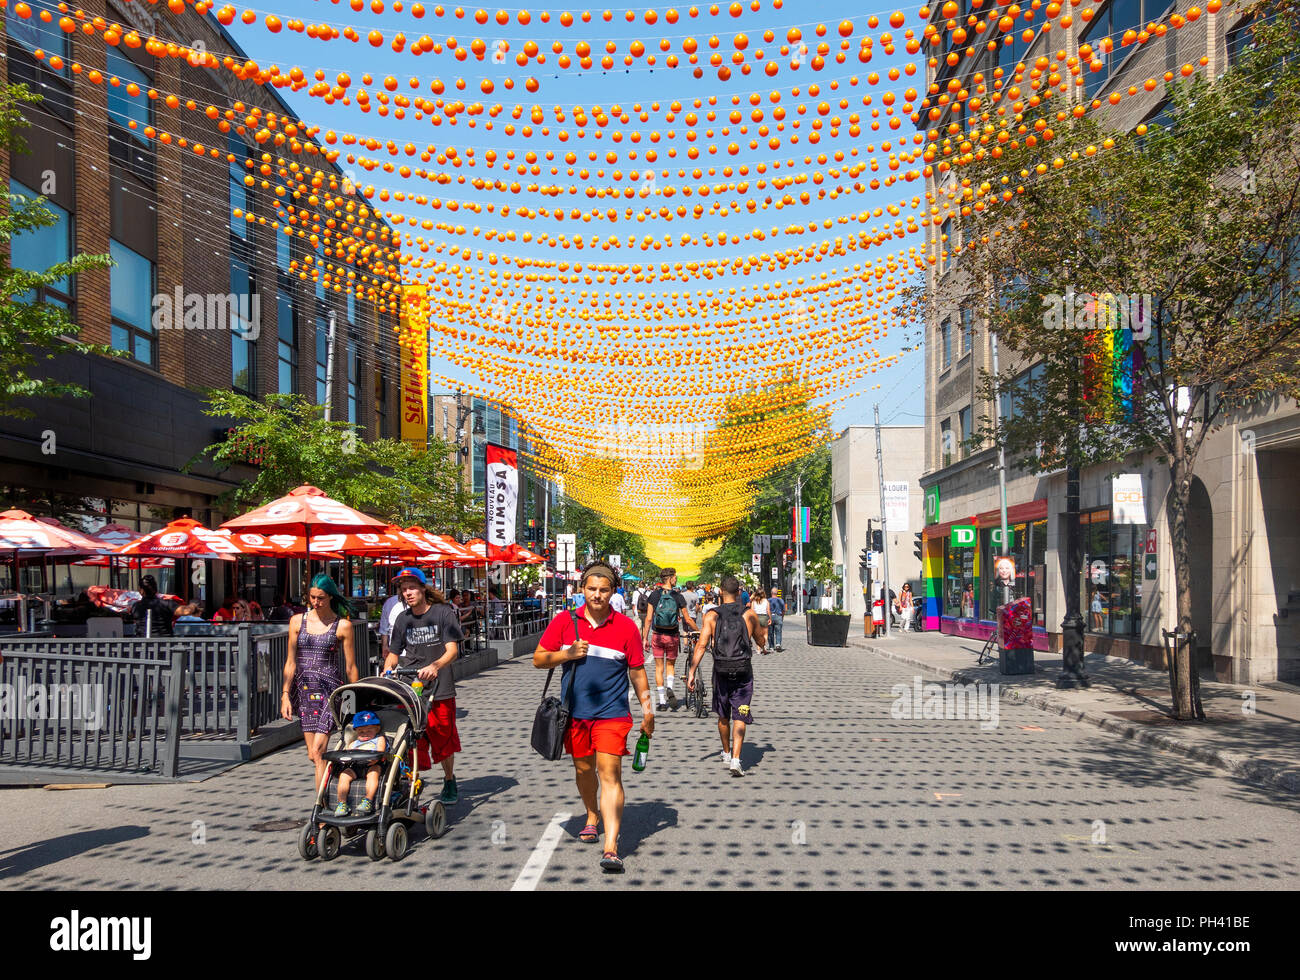 Decorations and no traffic in Gay Village on Rue Sainte-Catherine in Montreal, QC, Canada Stock Photo